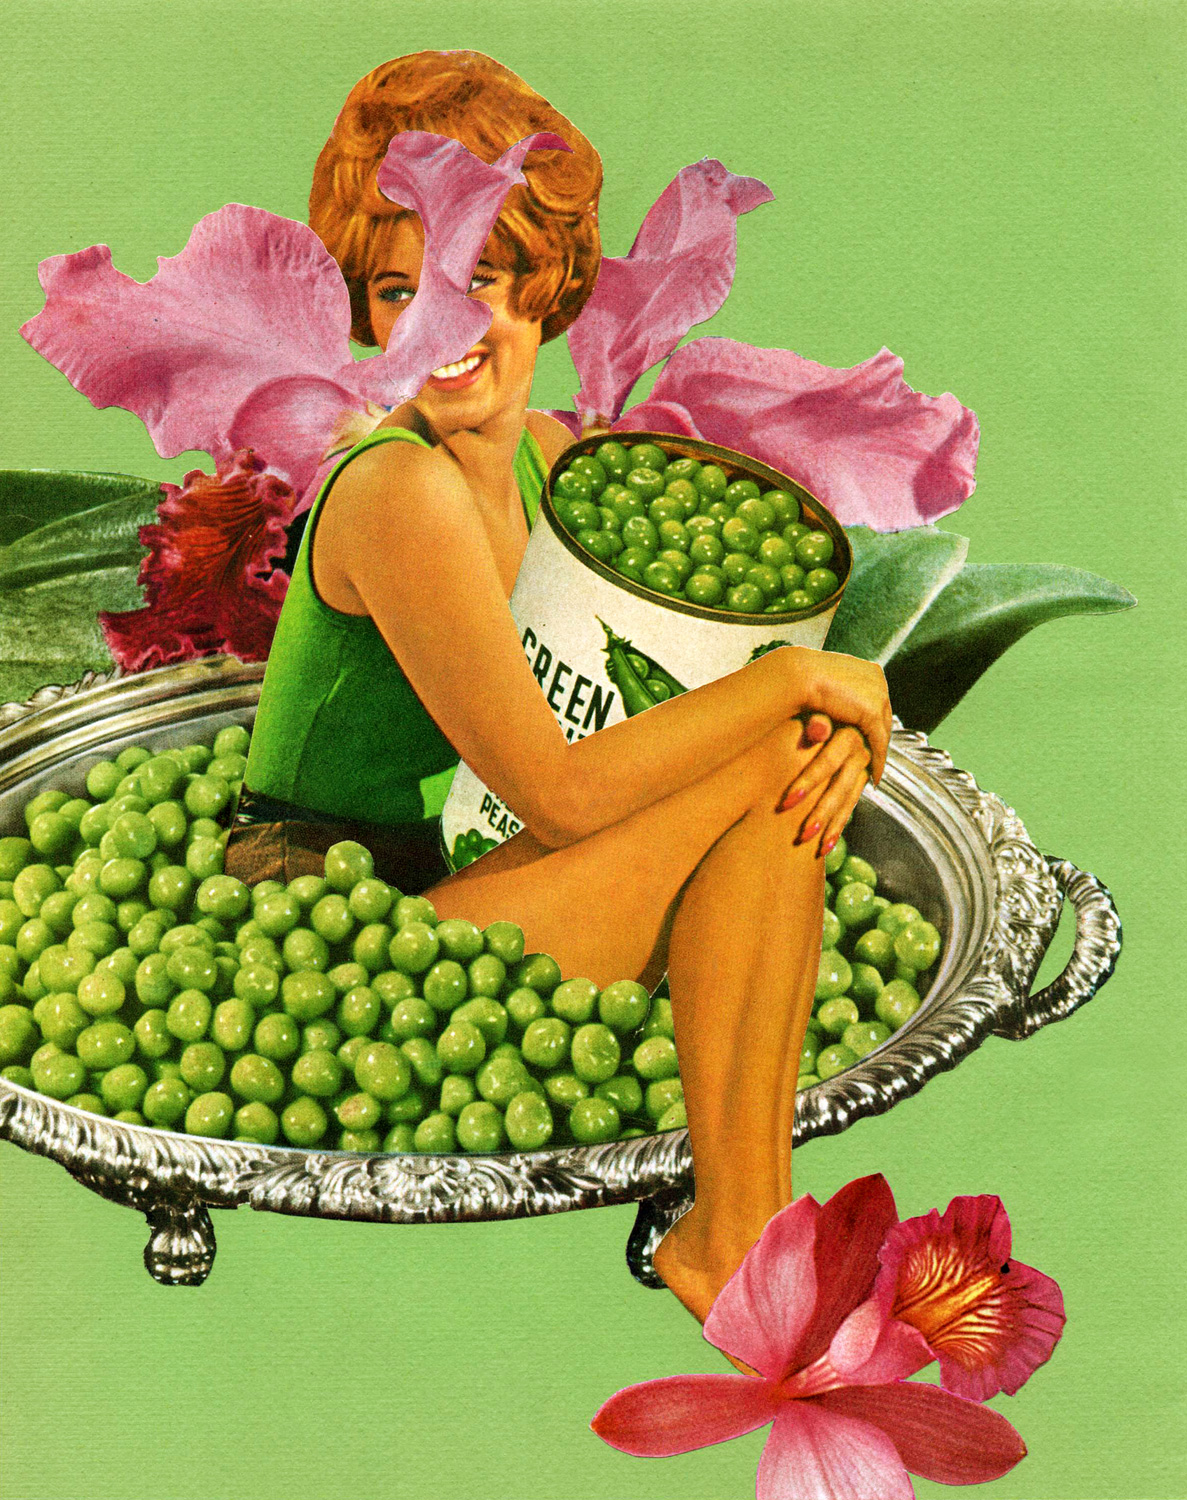 You Want a Peas of Me?